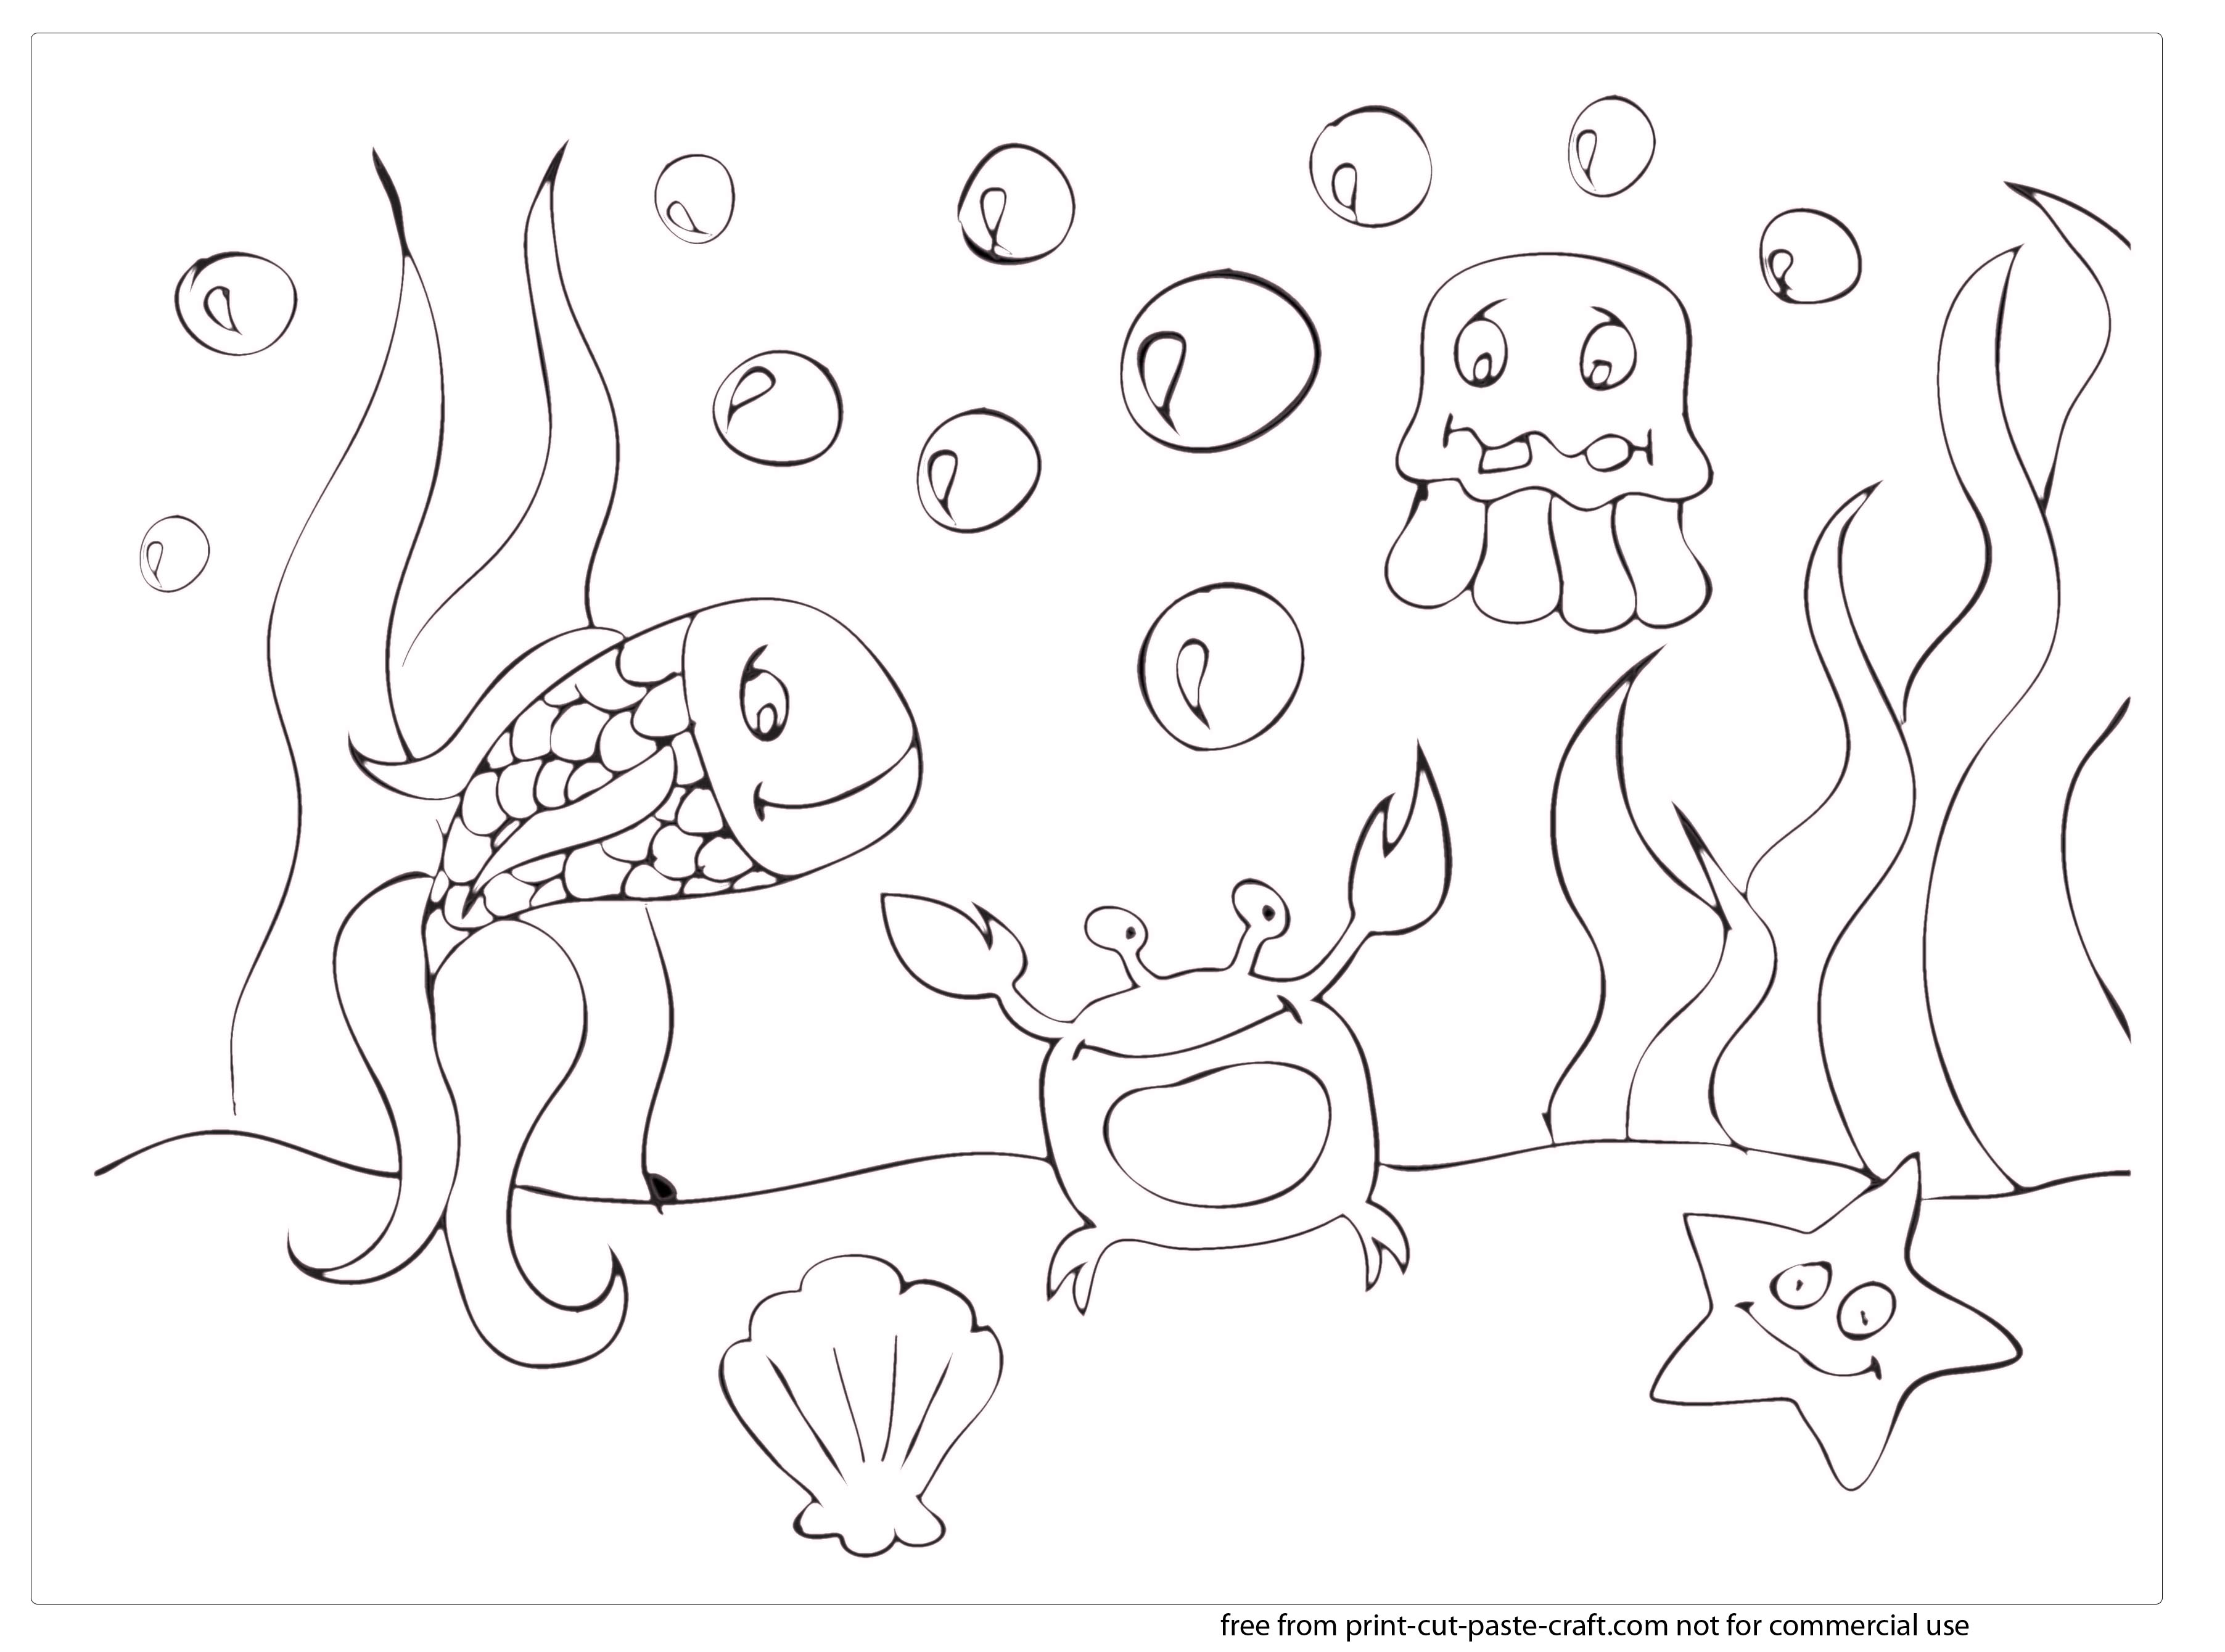 under the sea coloring pages. 3608x2679 Under The Sea Scene Coloring Pages Ocean For Adults Drawing at GetDrawings com  Free for personal use